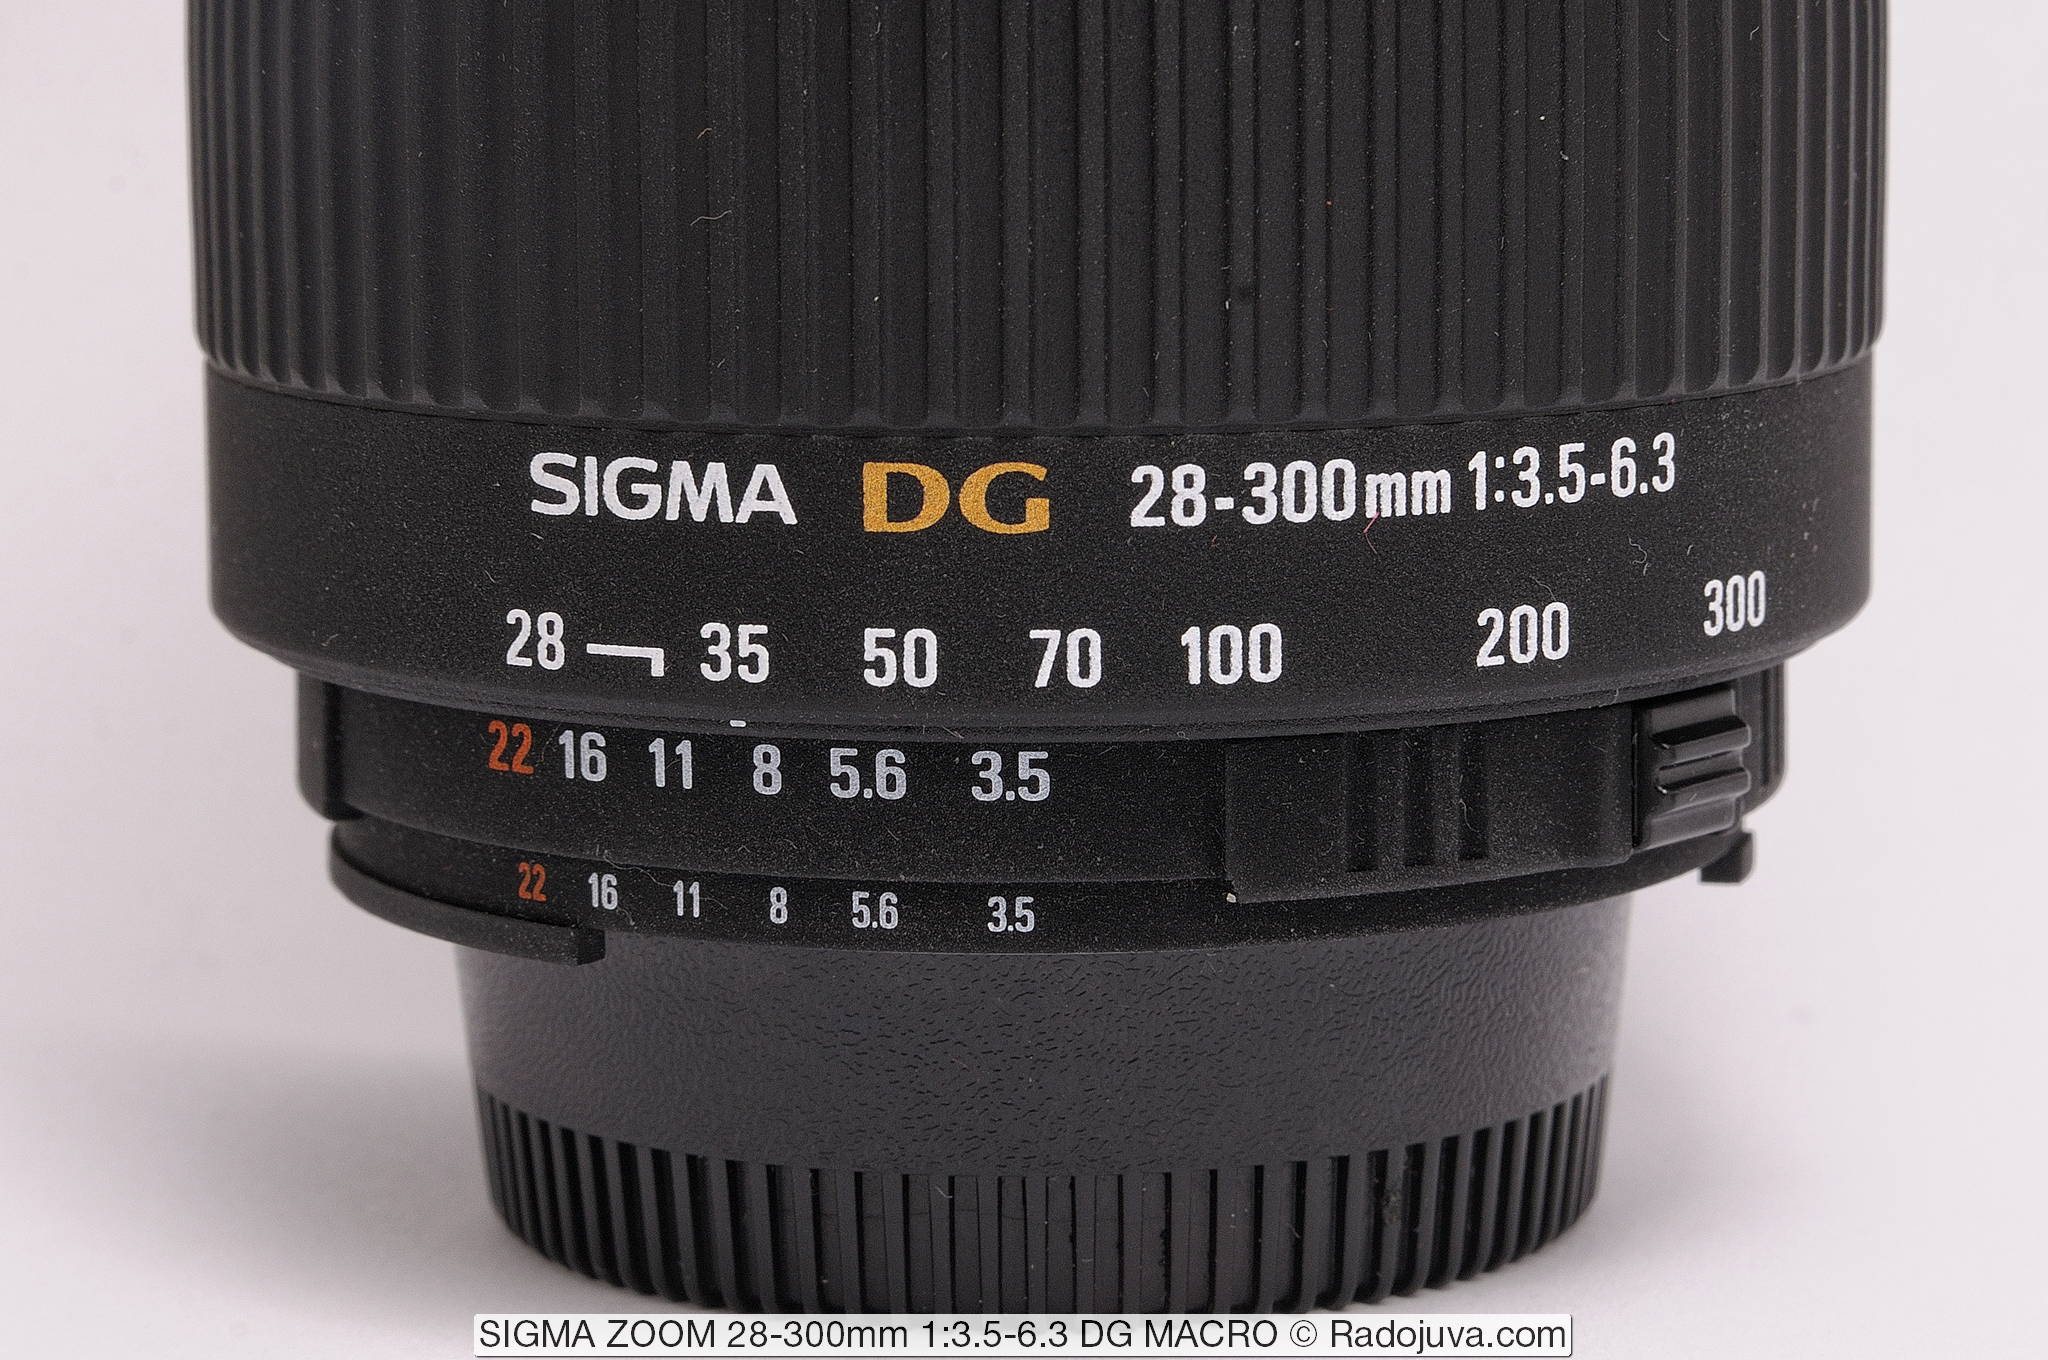 SIGMA ZOOM 28-300mm 1:3.5-6.3 DG MACRO